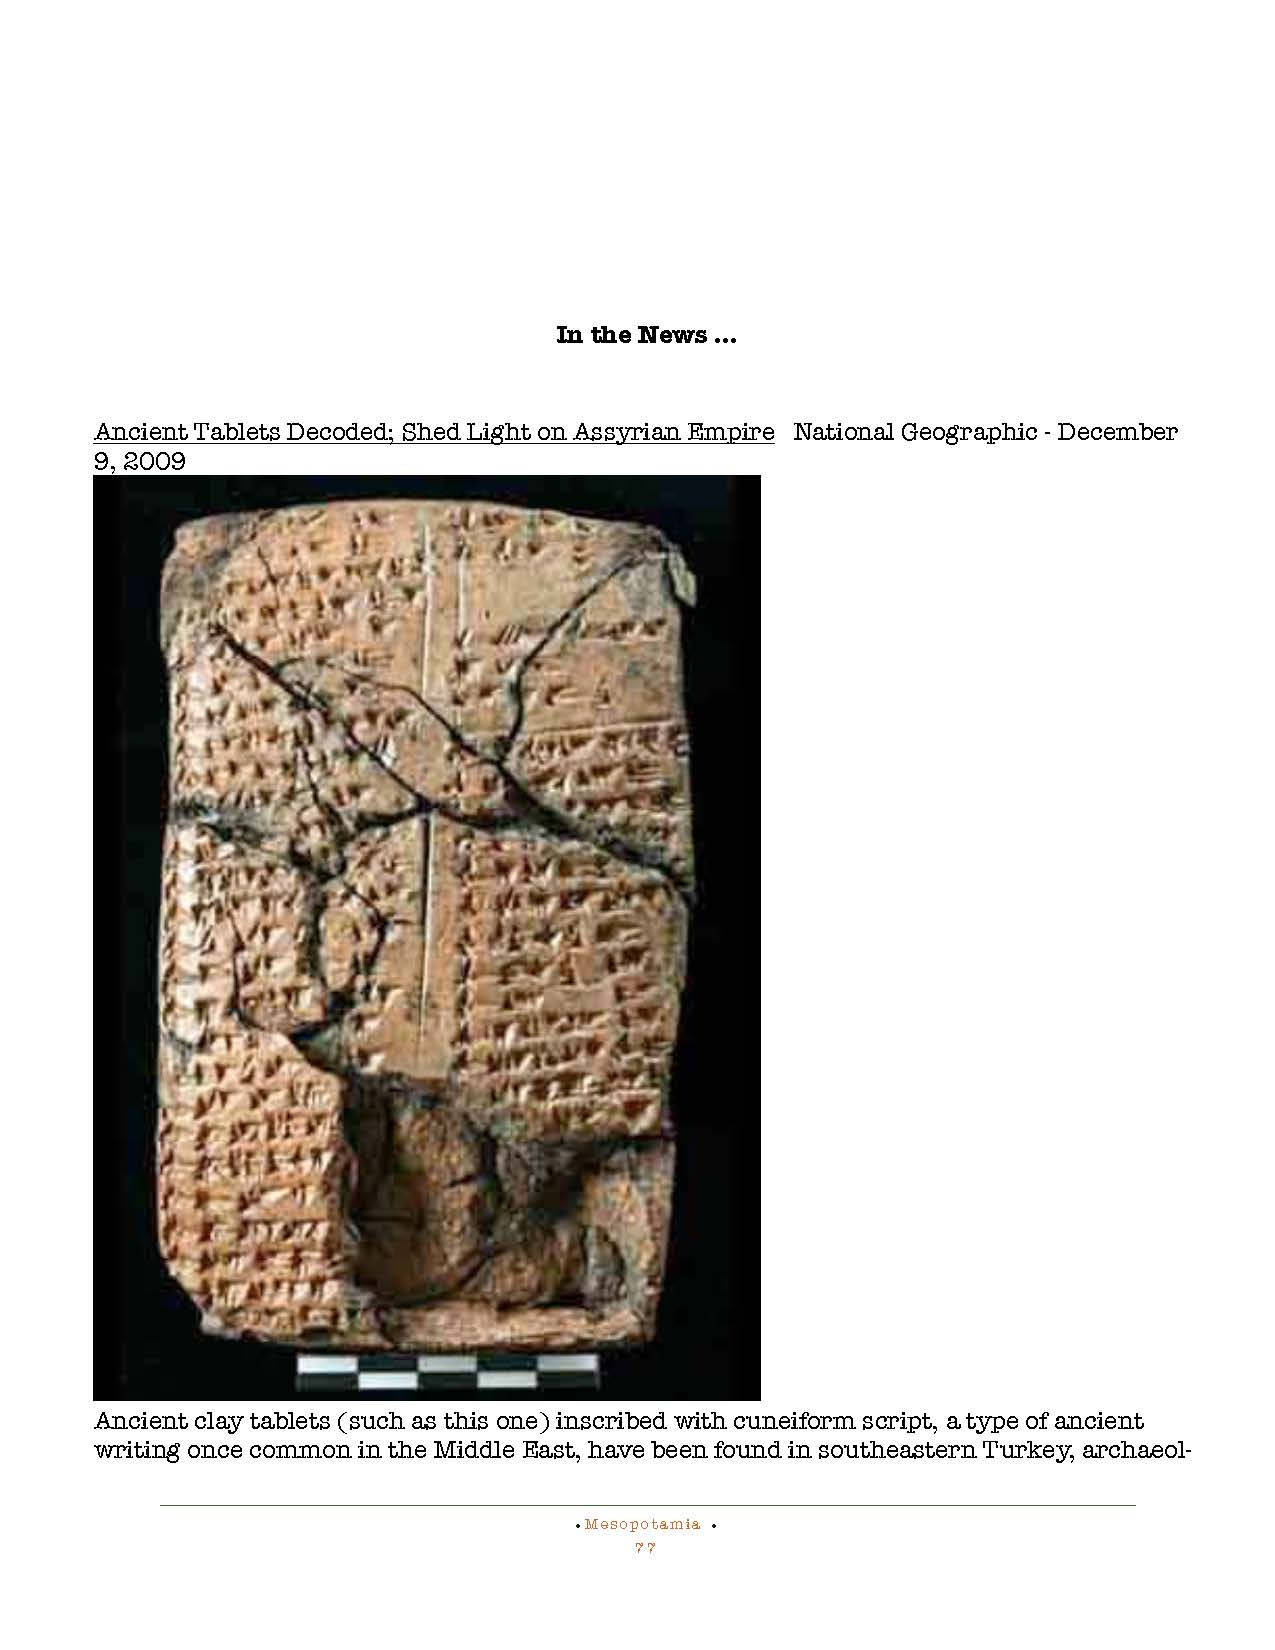 HOCE- Fertile Crescent Notes_Page_077.jpg